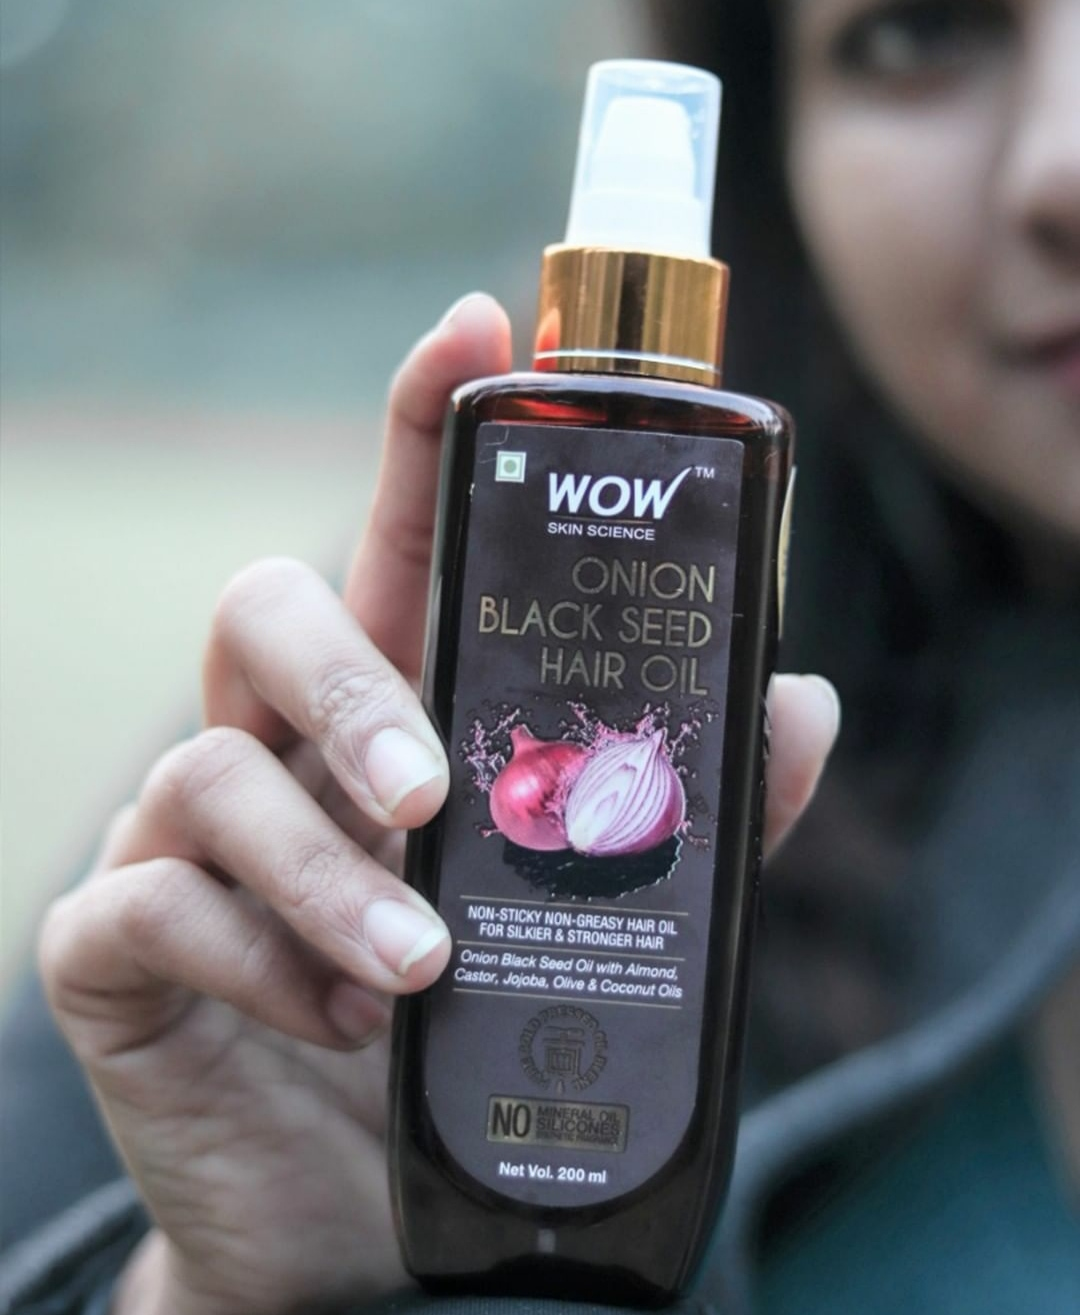 WOW Skin Science Onion Black Seed Hair Oil-It helped in hair regrowth-By anjali_jalan